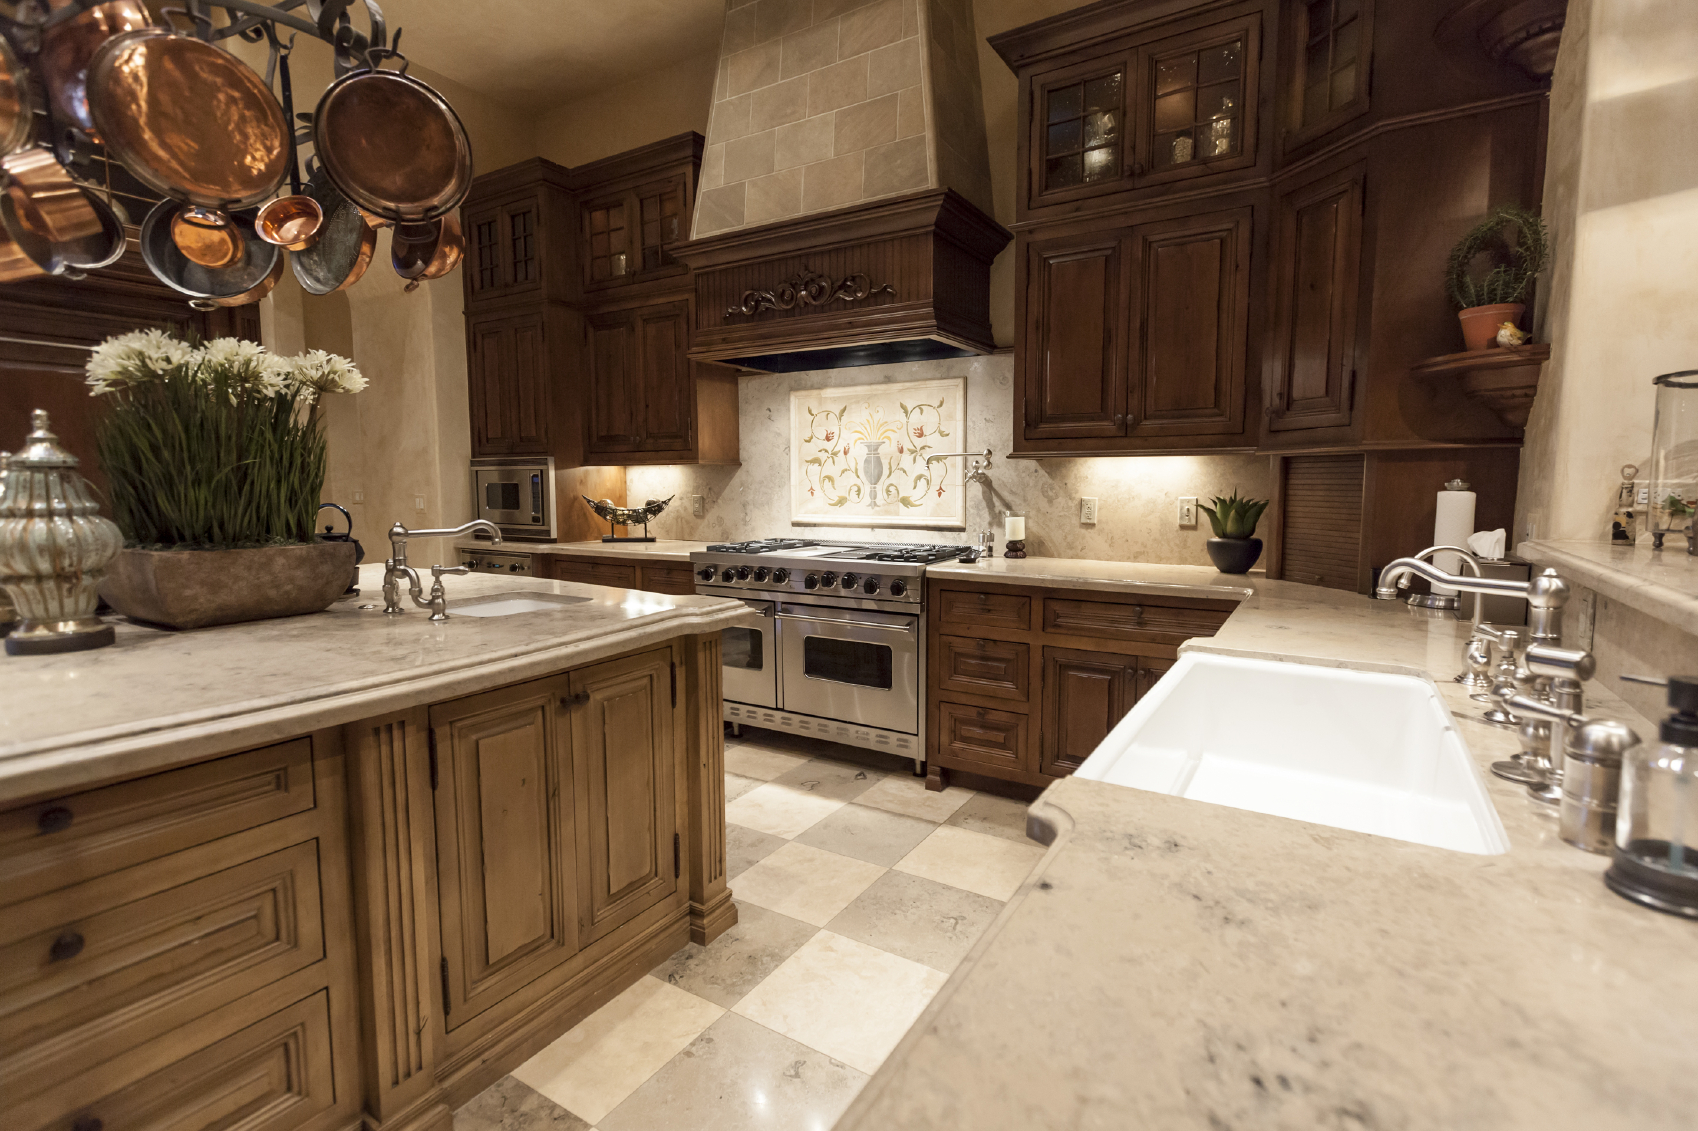 contemporary wood kitchens wood kitchen cabinets Large L shaped luxury dark wood kitchen with custom cabinets throughout